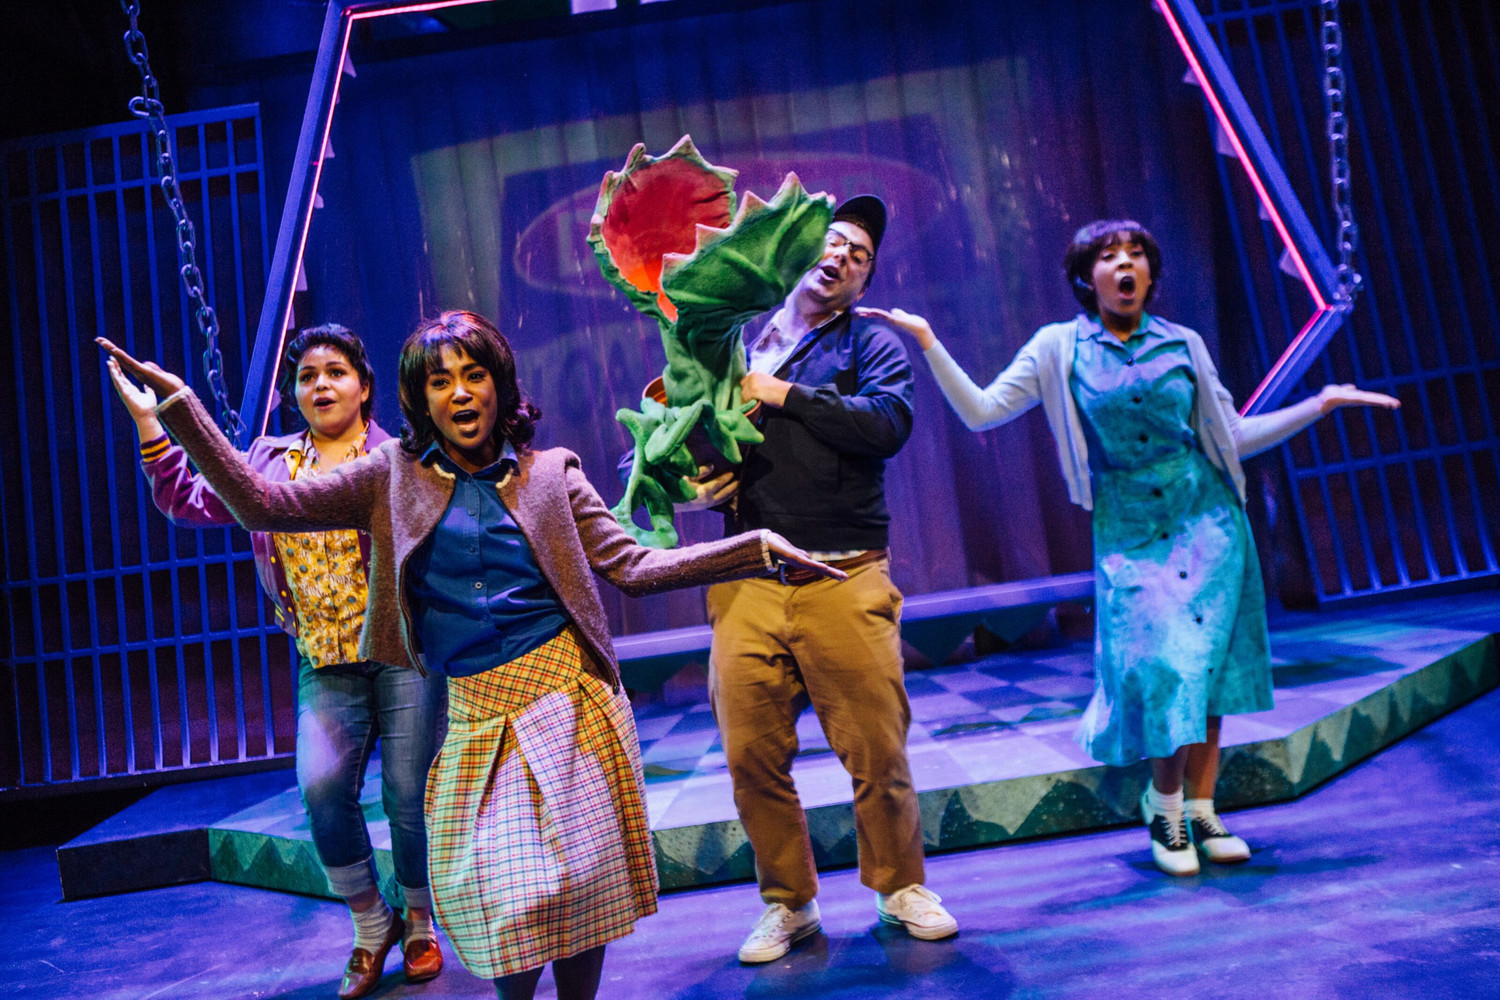 BWW Review: LITTLE SHOP OF HORRORS is in bloom at STAGES REPERTORY THEATRE